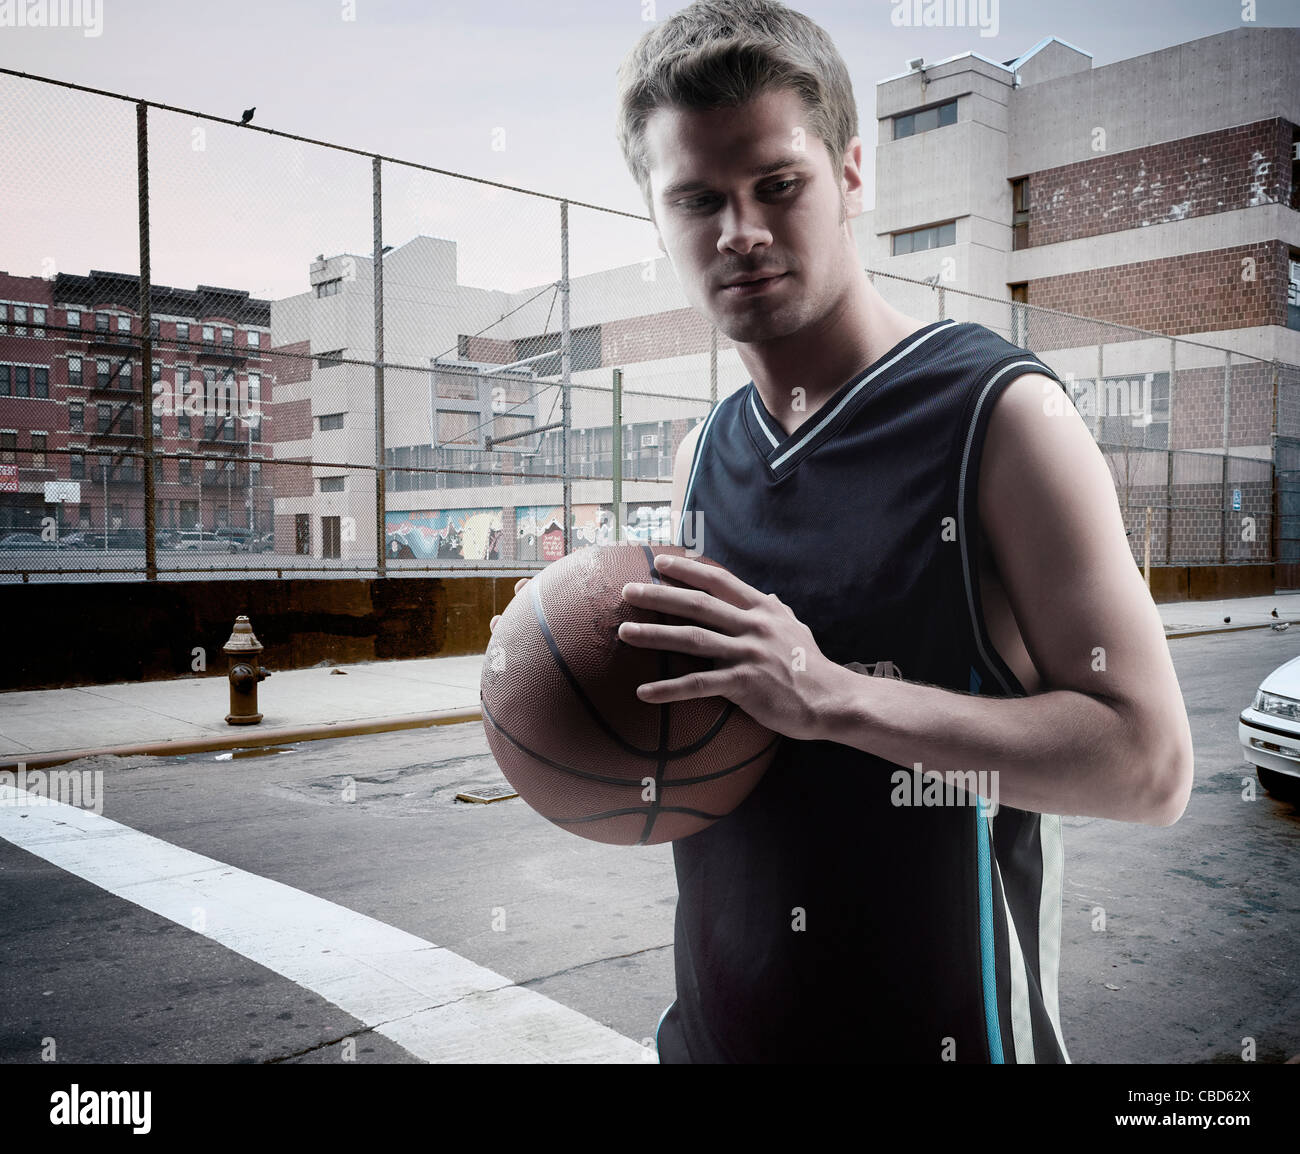 Man carrying basketball on city street - Stock Image